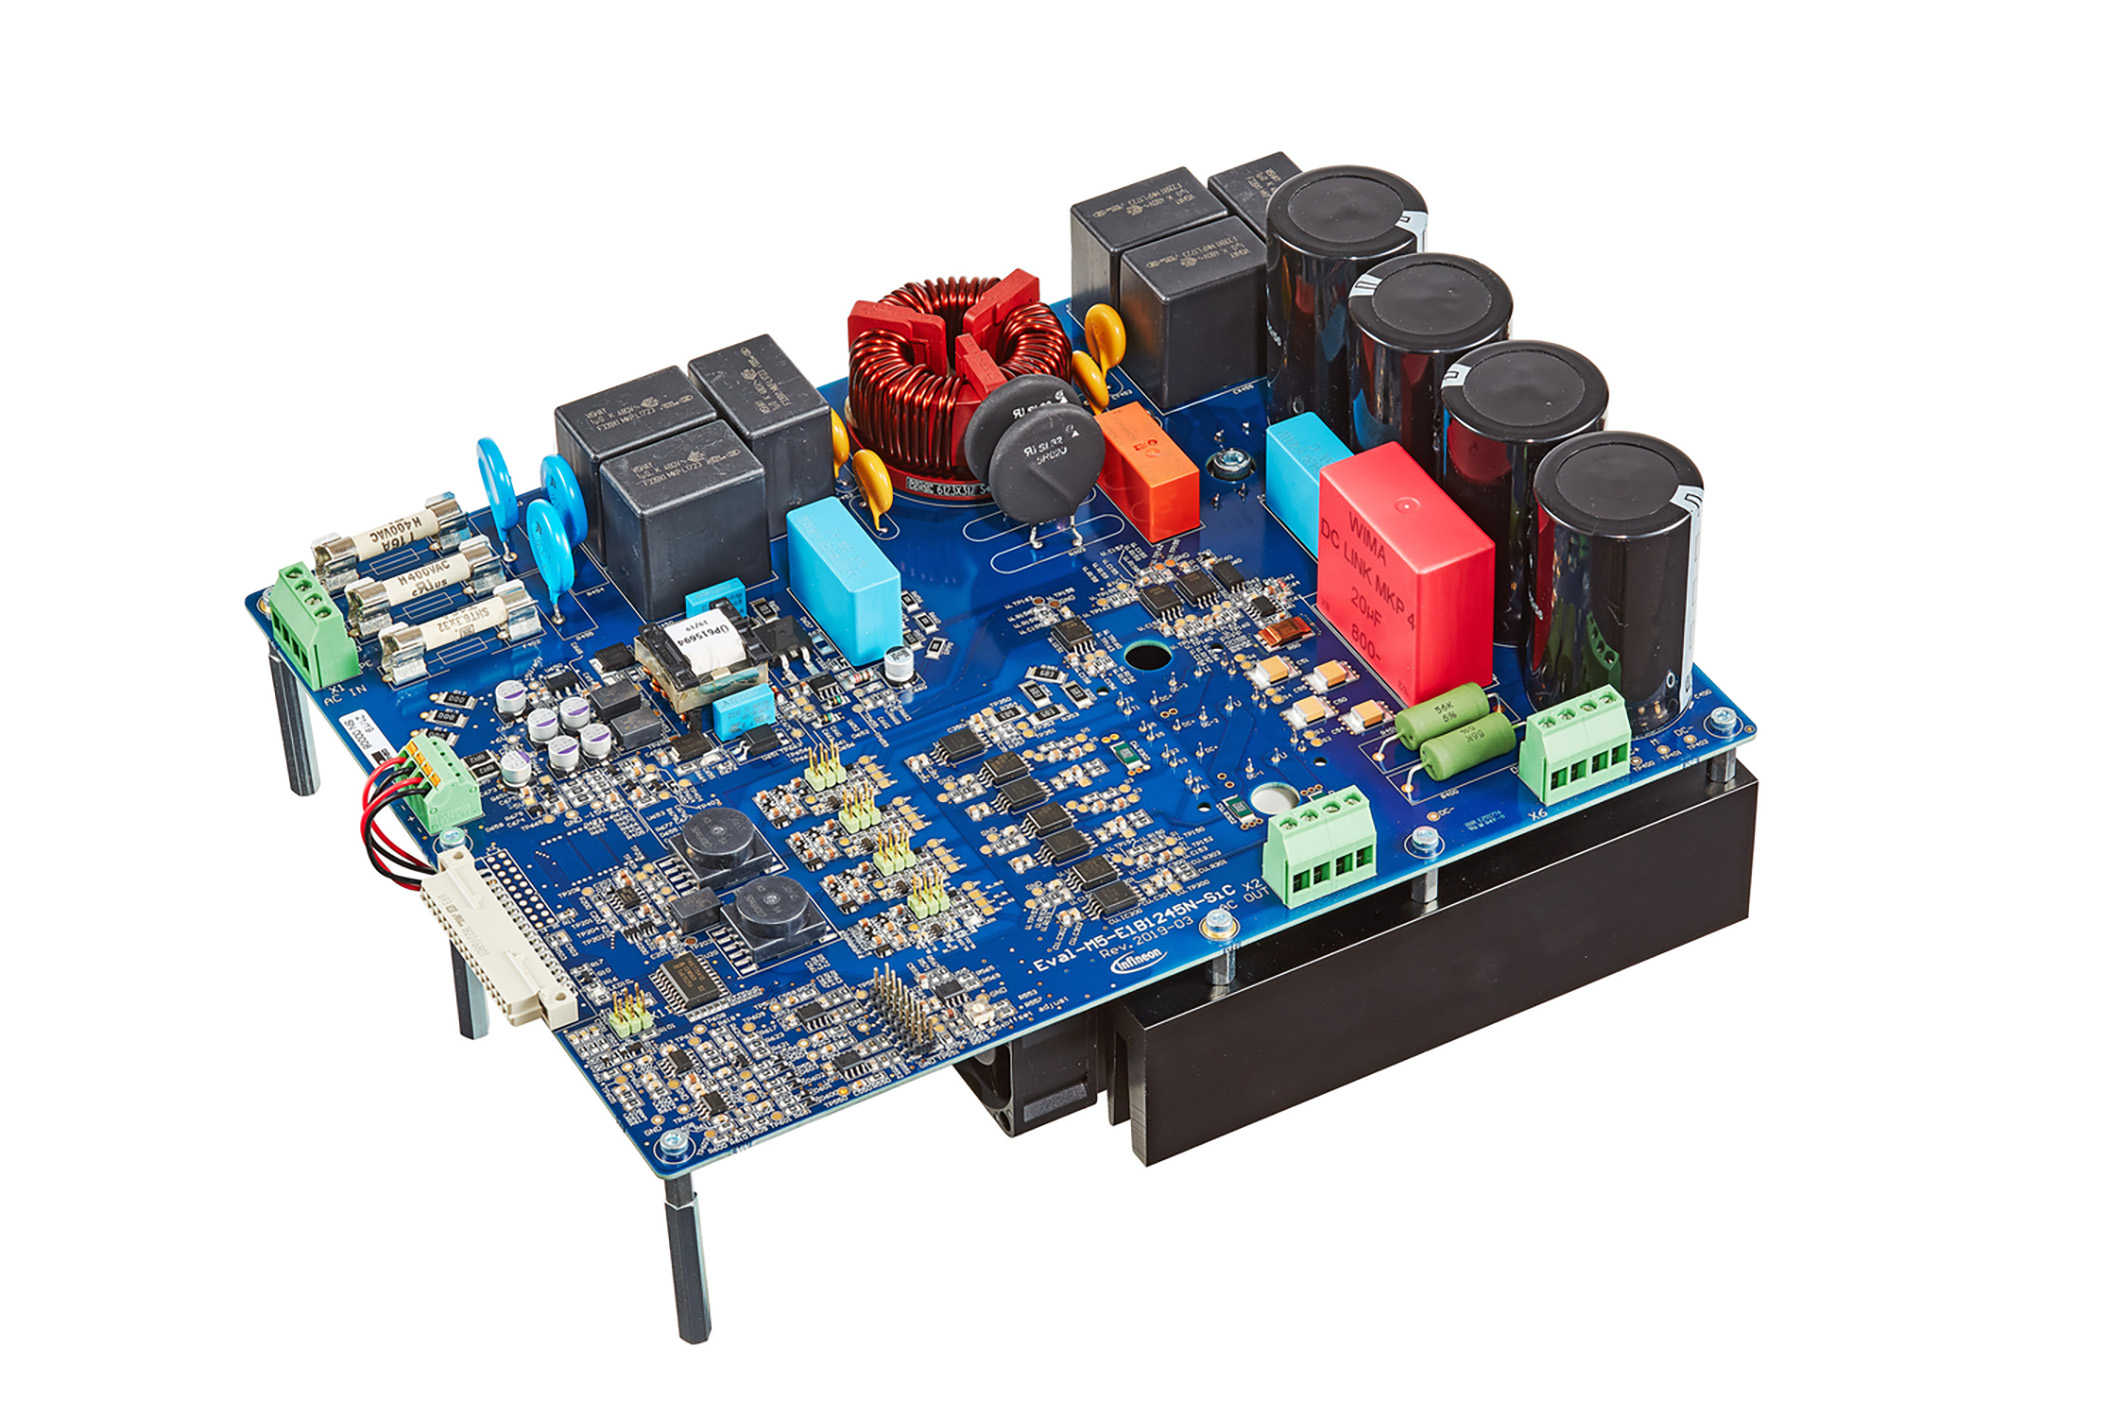 CoolSiC™ MOSFET evaluation board for motor drives up to 7.5 kW